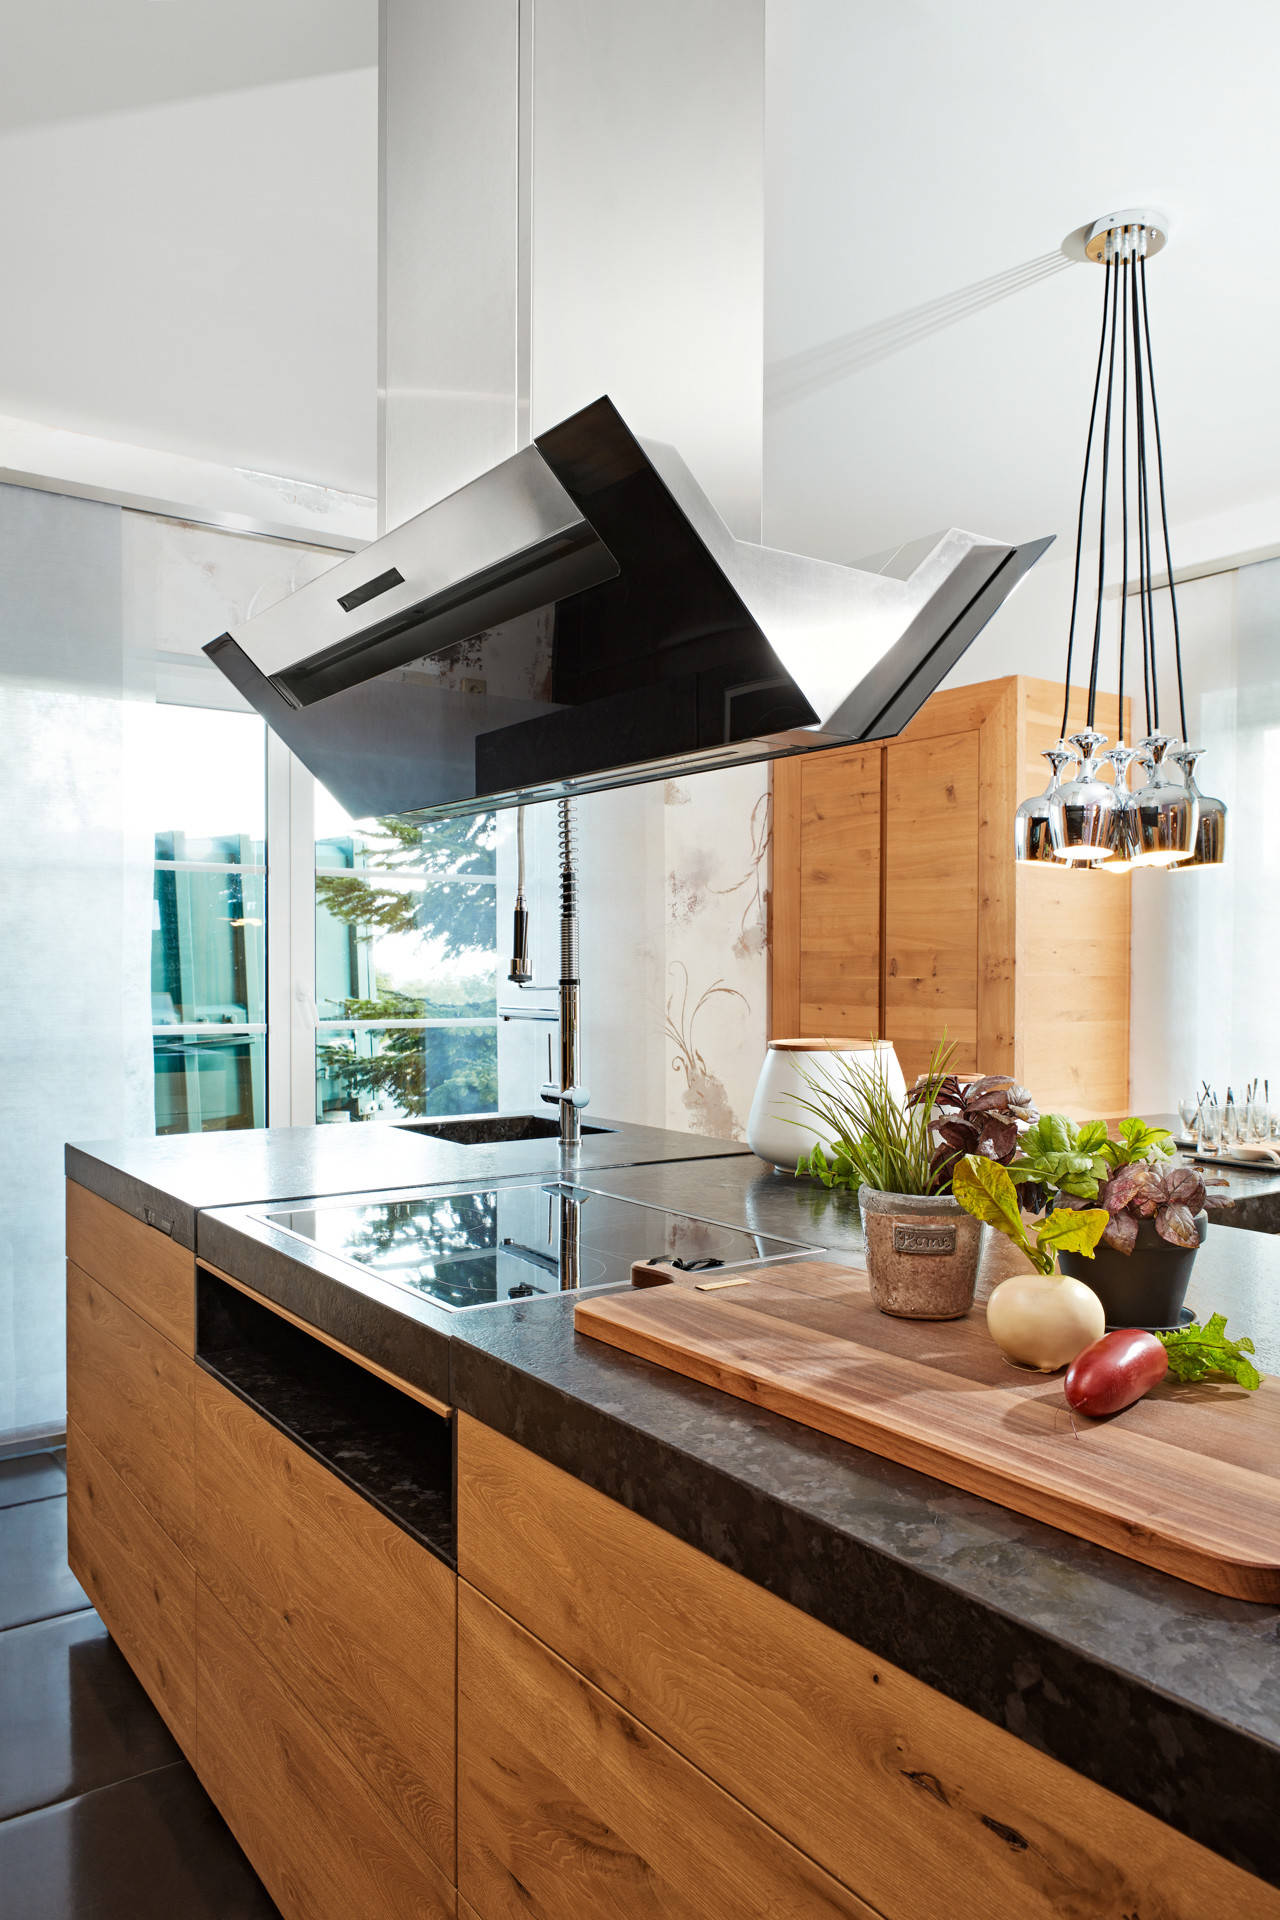 75 Beautiful Kitchen With Light Wood Cabinets And Granite Countertops Pictures Ideas November 2020 Houzz